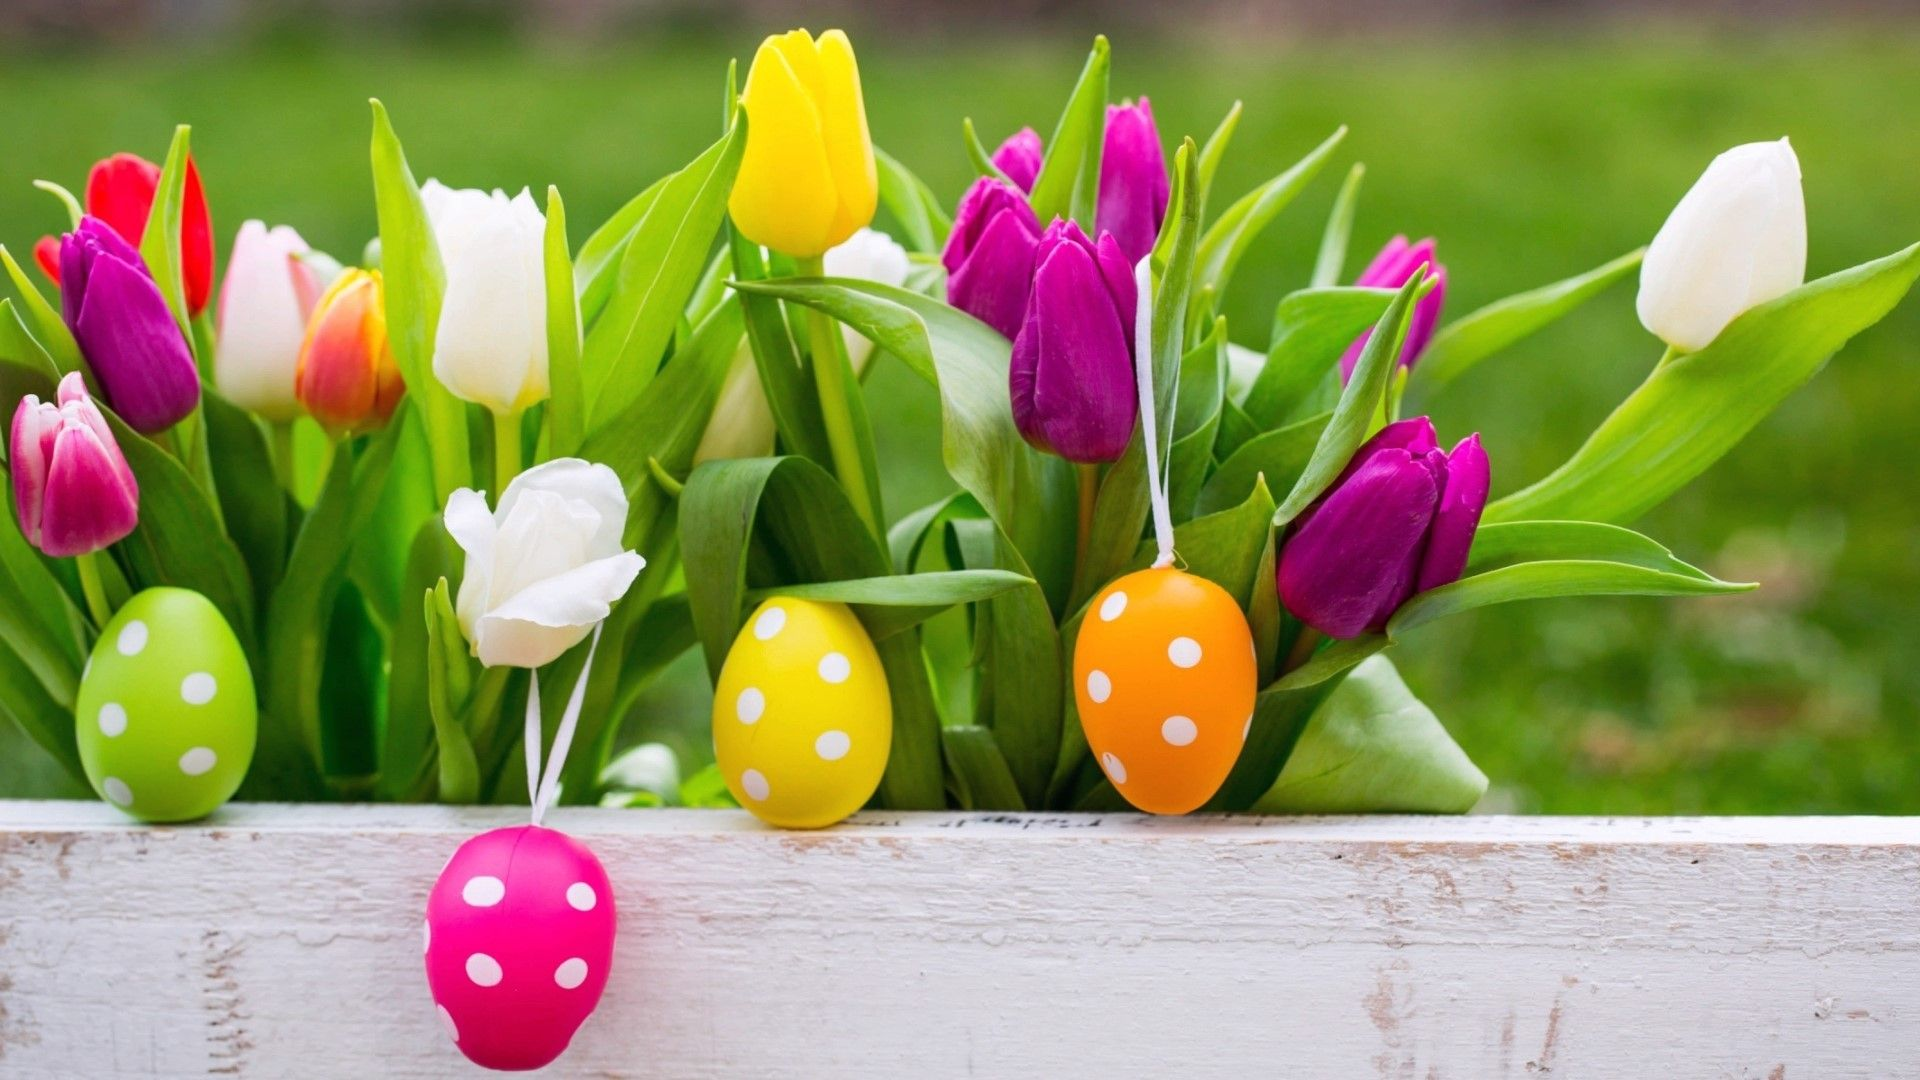 1000 Images About Easter Wallpaper On Pinterest: Easter Eggs With Beautiful Background